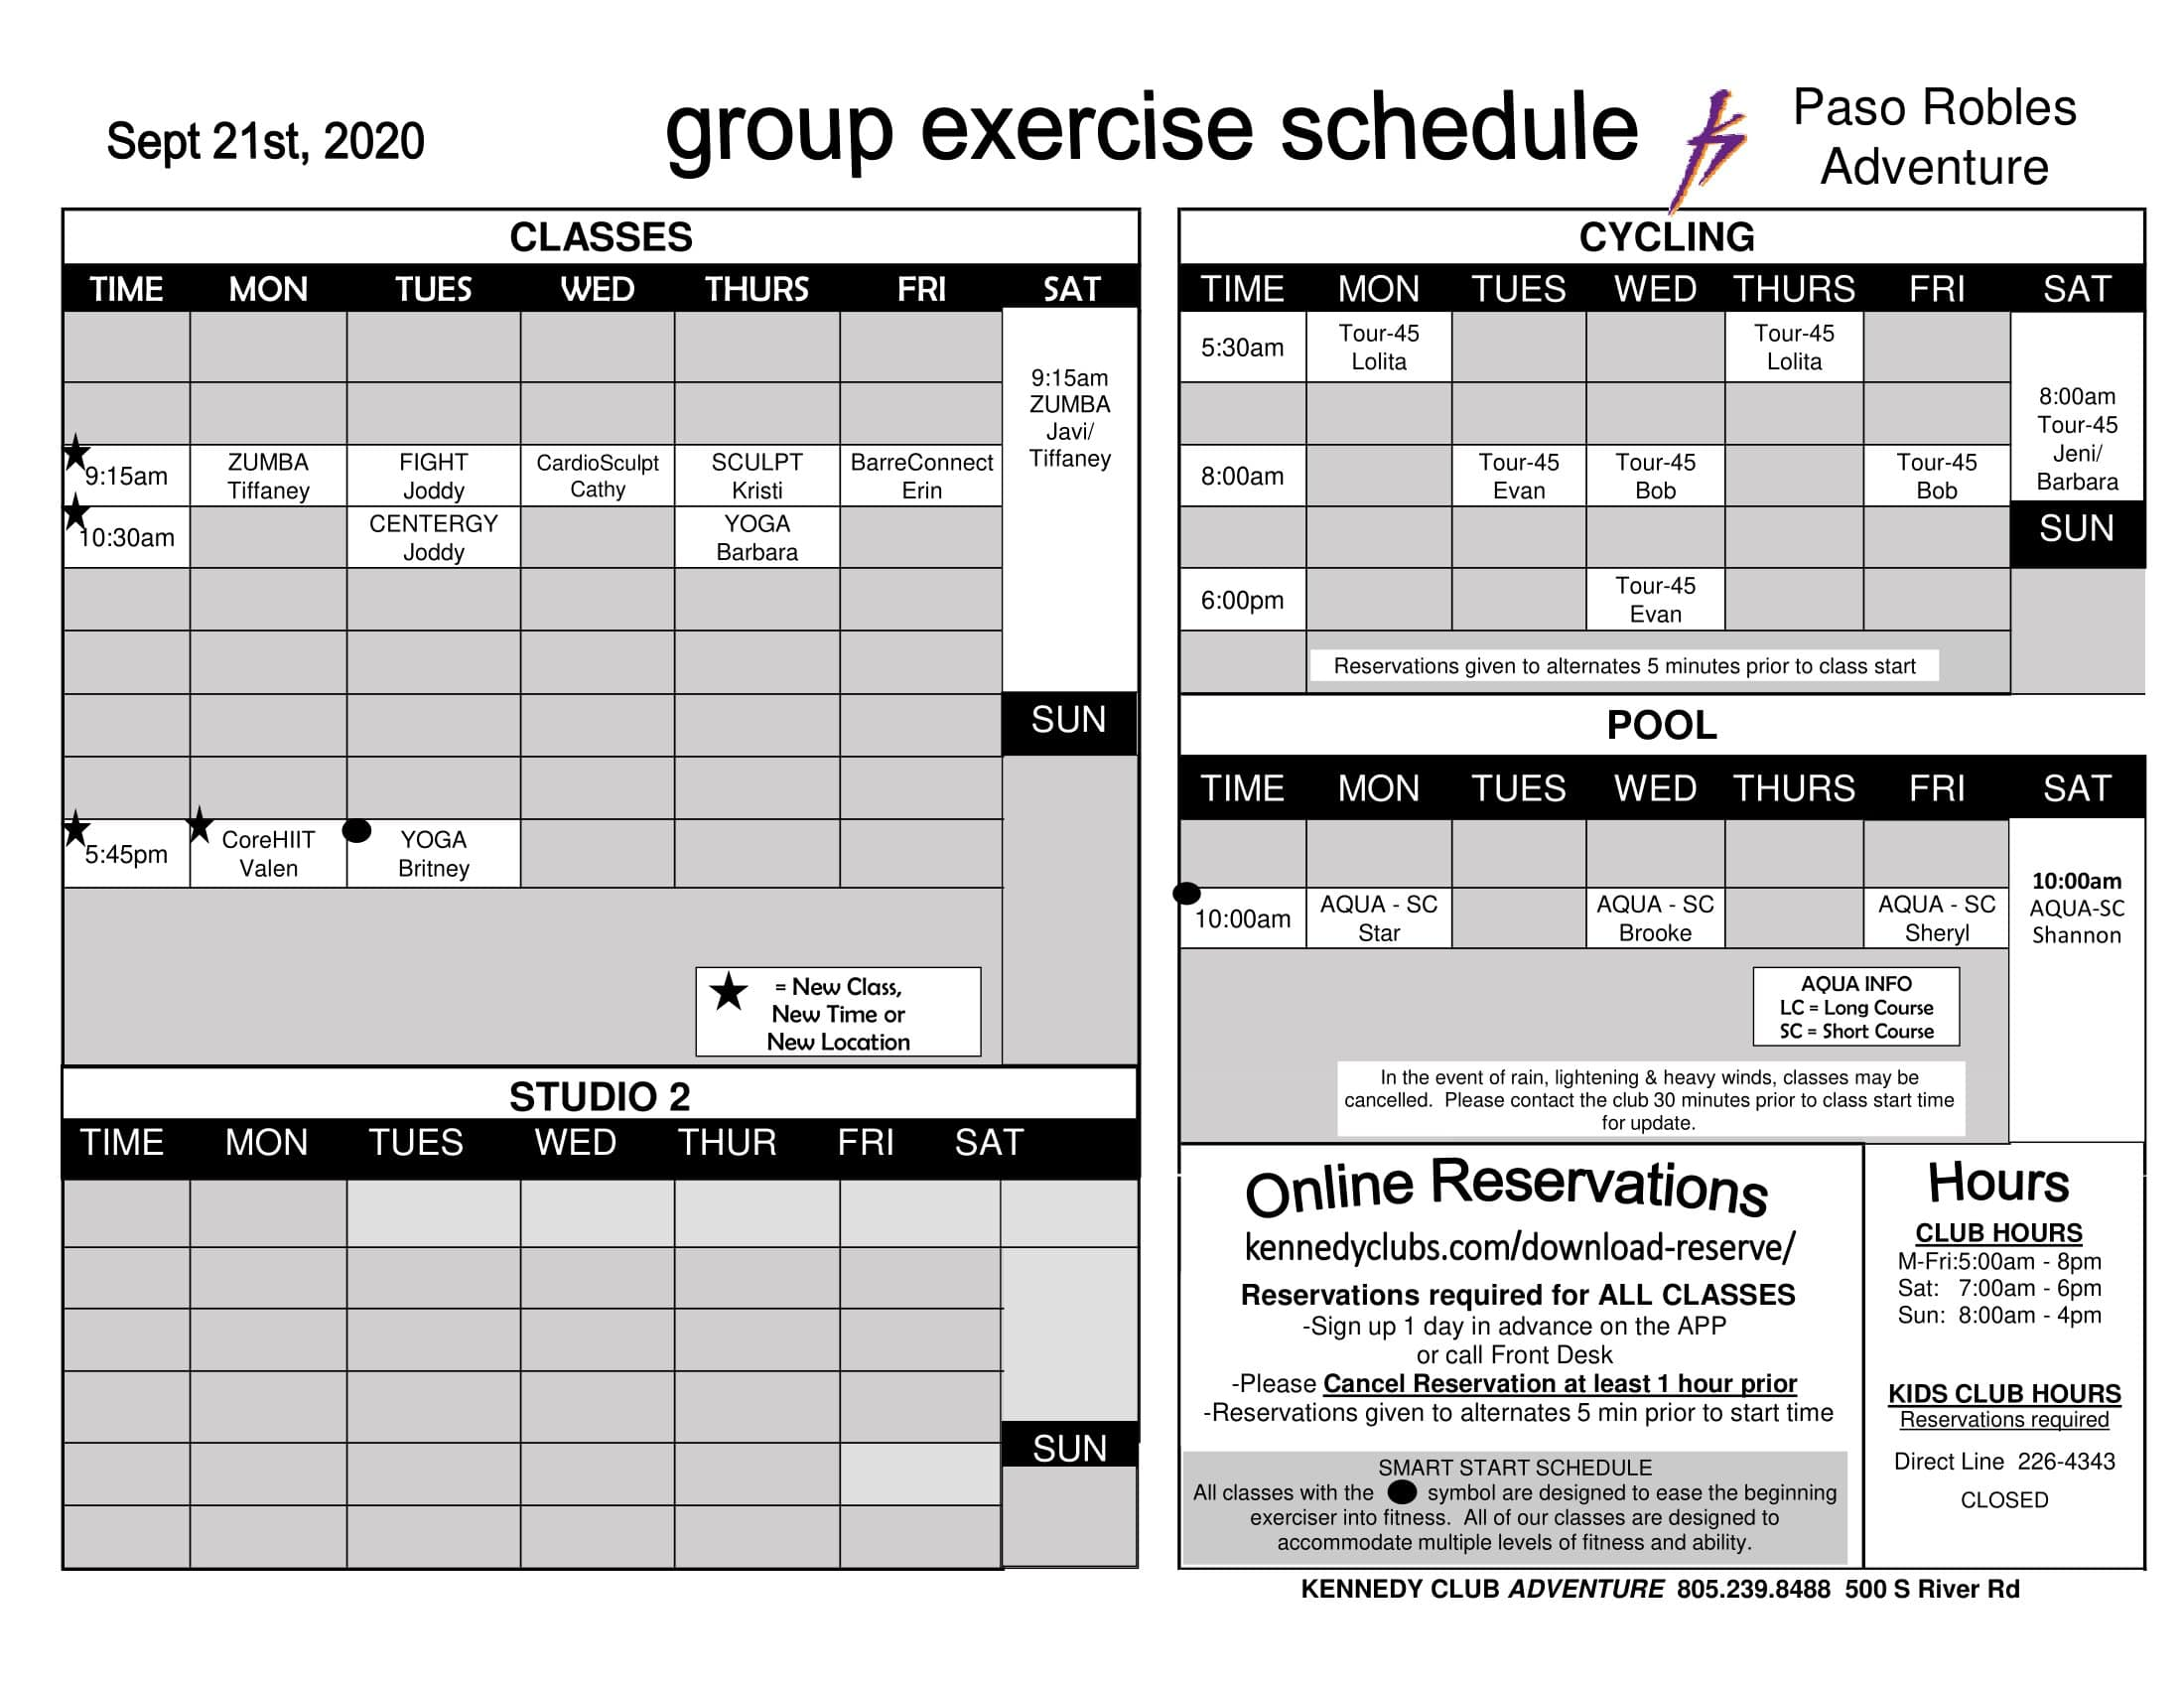 Kennedy Club Fitness Paso Robles Outdoor Group Exercise Schedule 9 21 2020